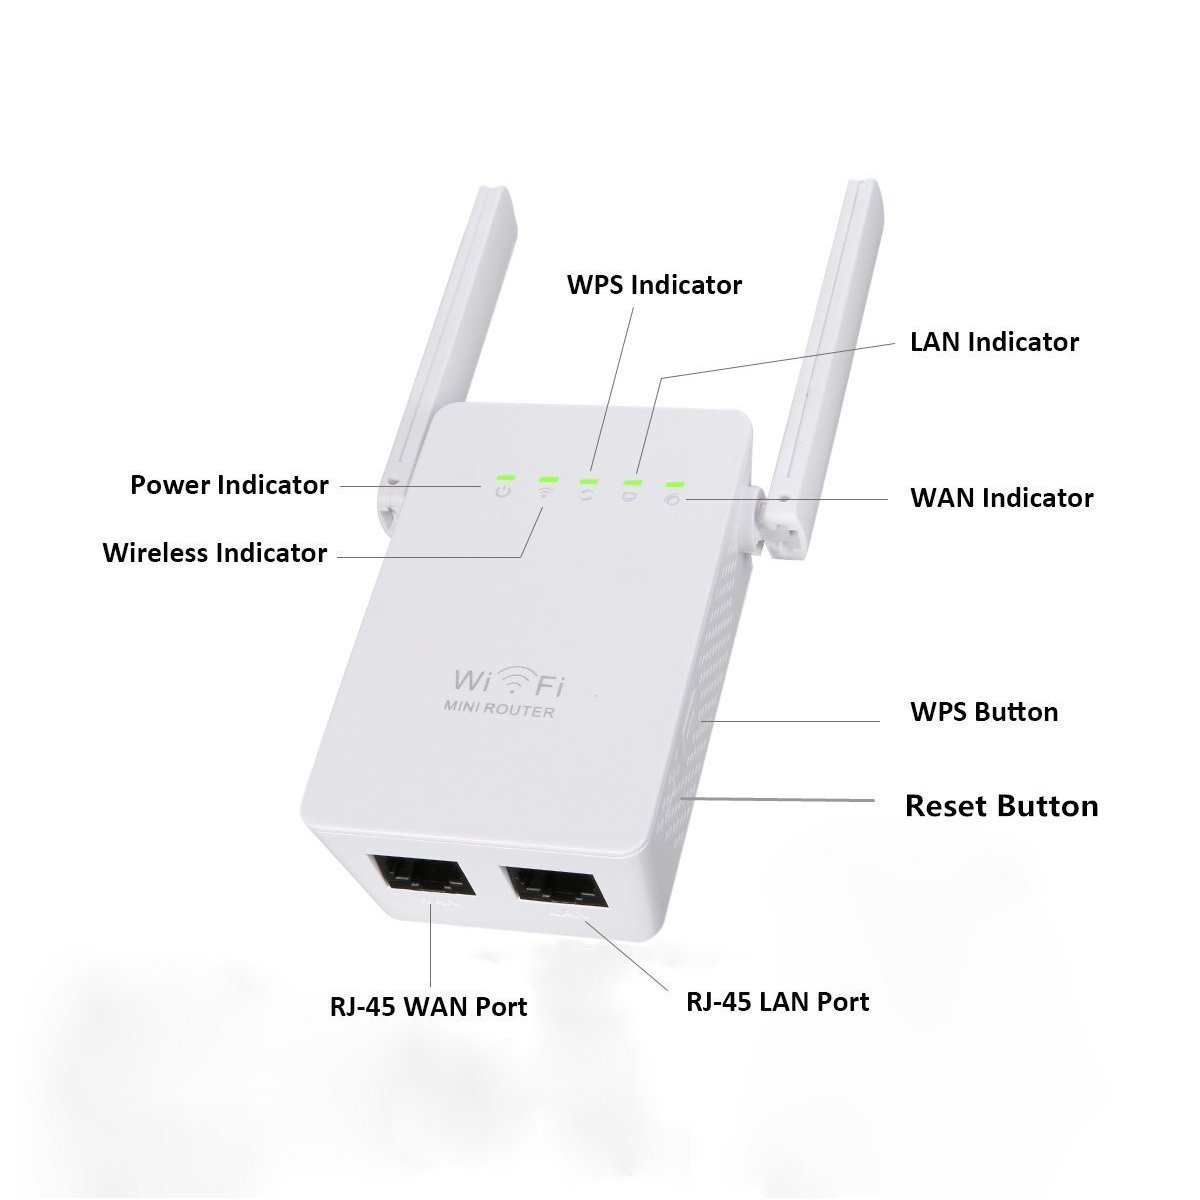 Wlan Reapter, MECO 2 lange Antennen, 2 LAN- Ports Wlan: Amazon.de ...